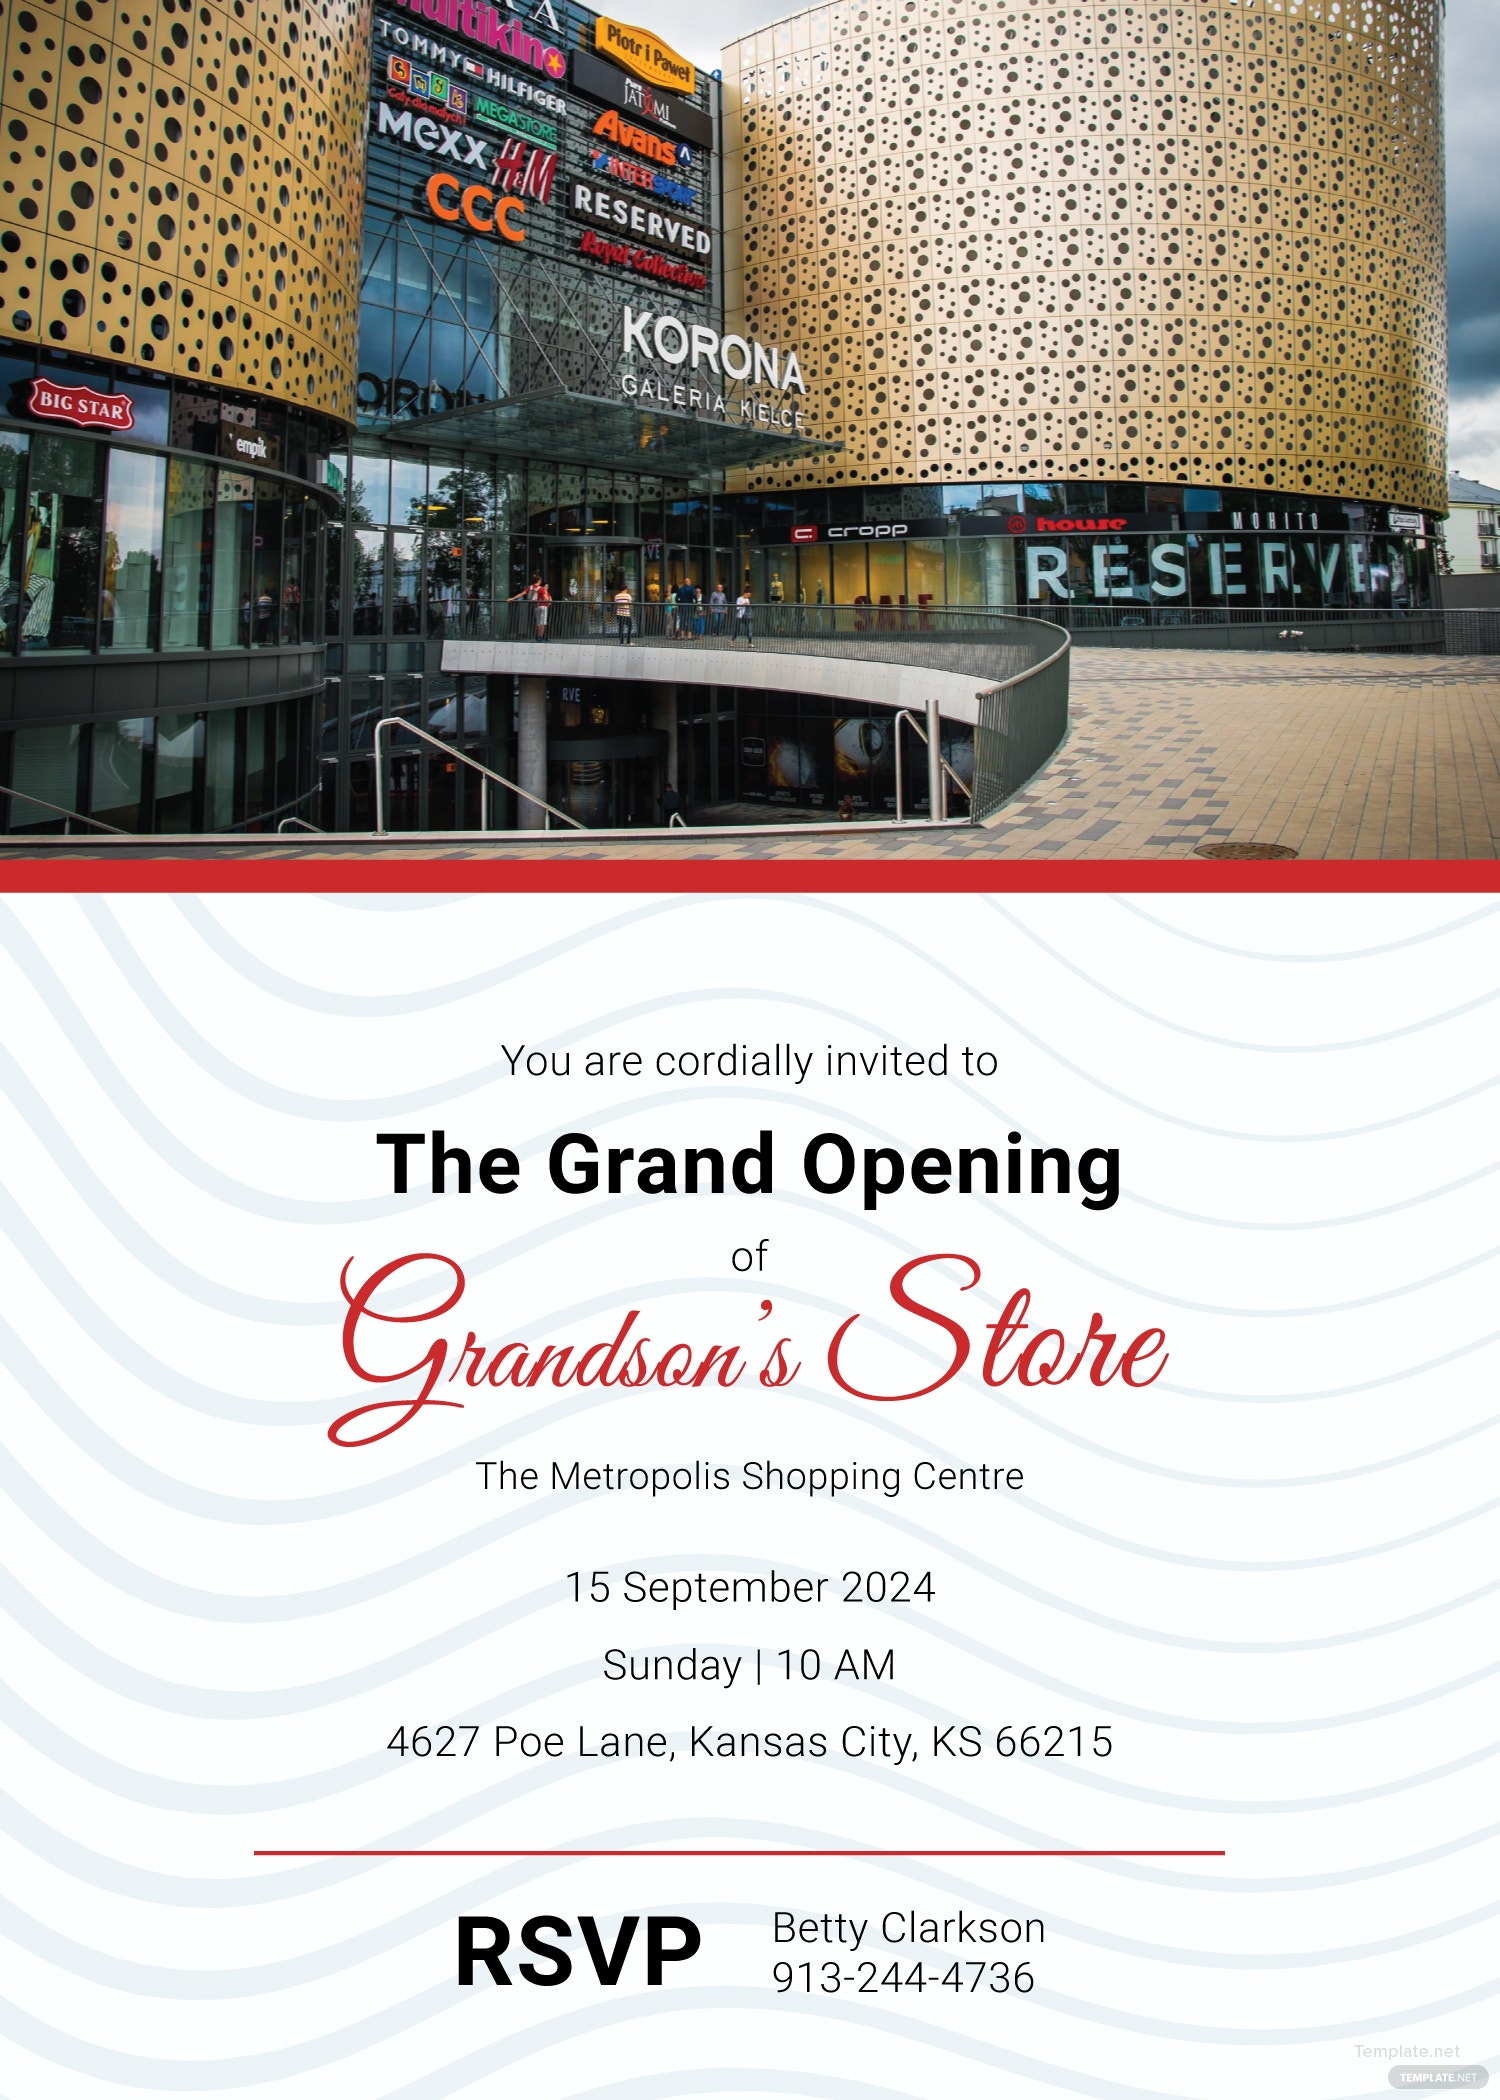 Store Opening Invitation Template in Adobe Illustrator Photoshop